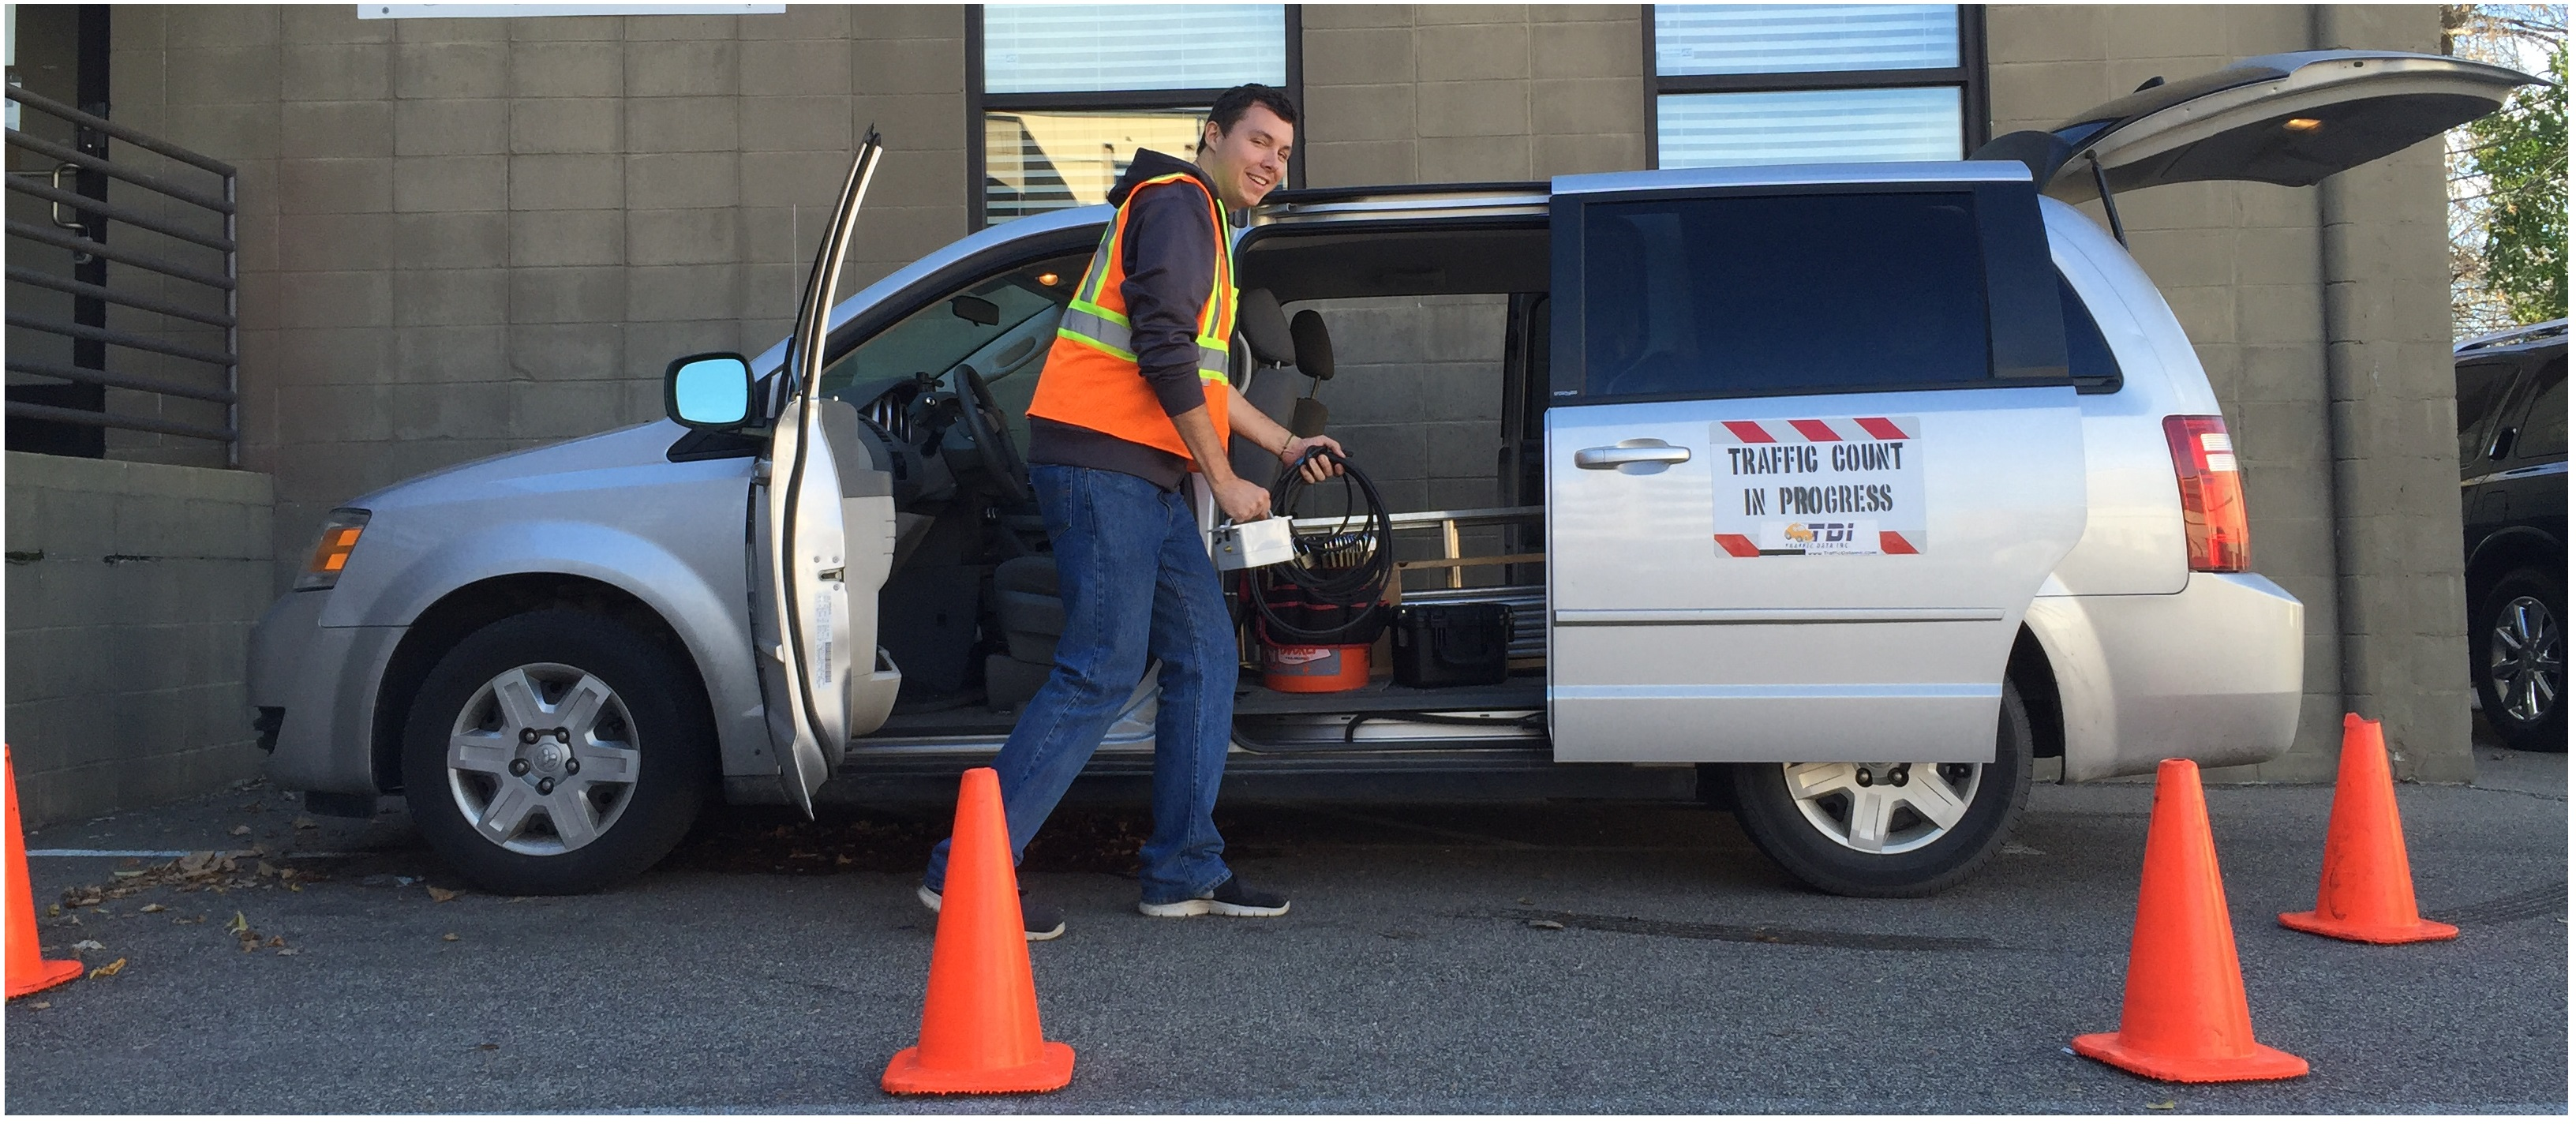 6 Must Have Features for a Traffic Counting Vehicle